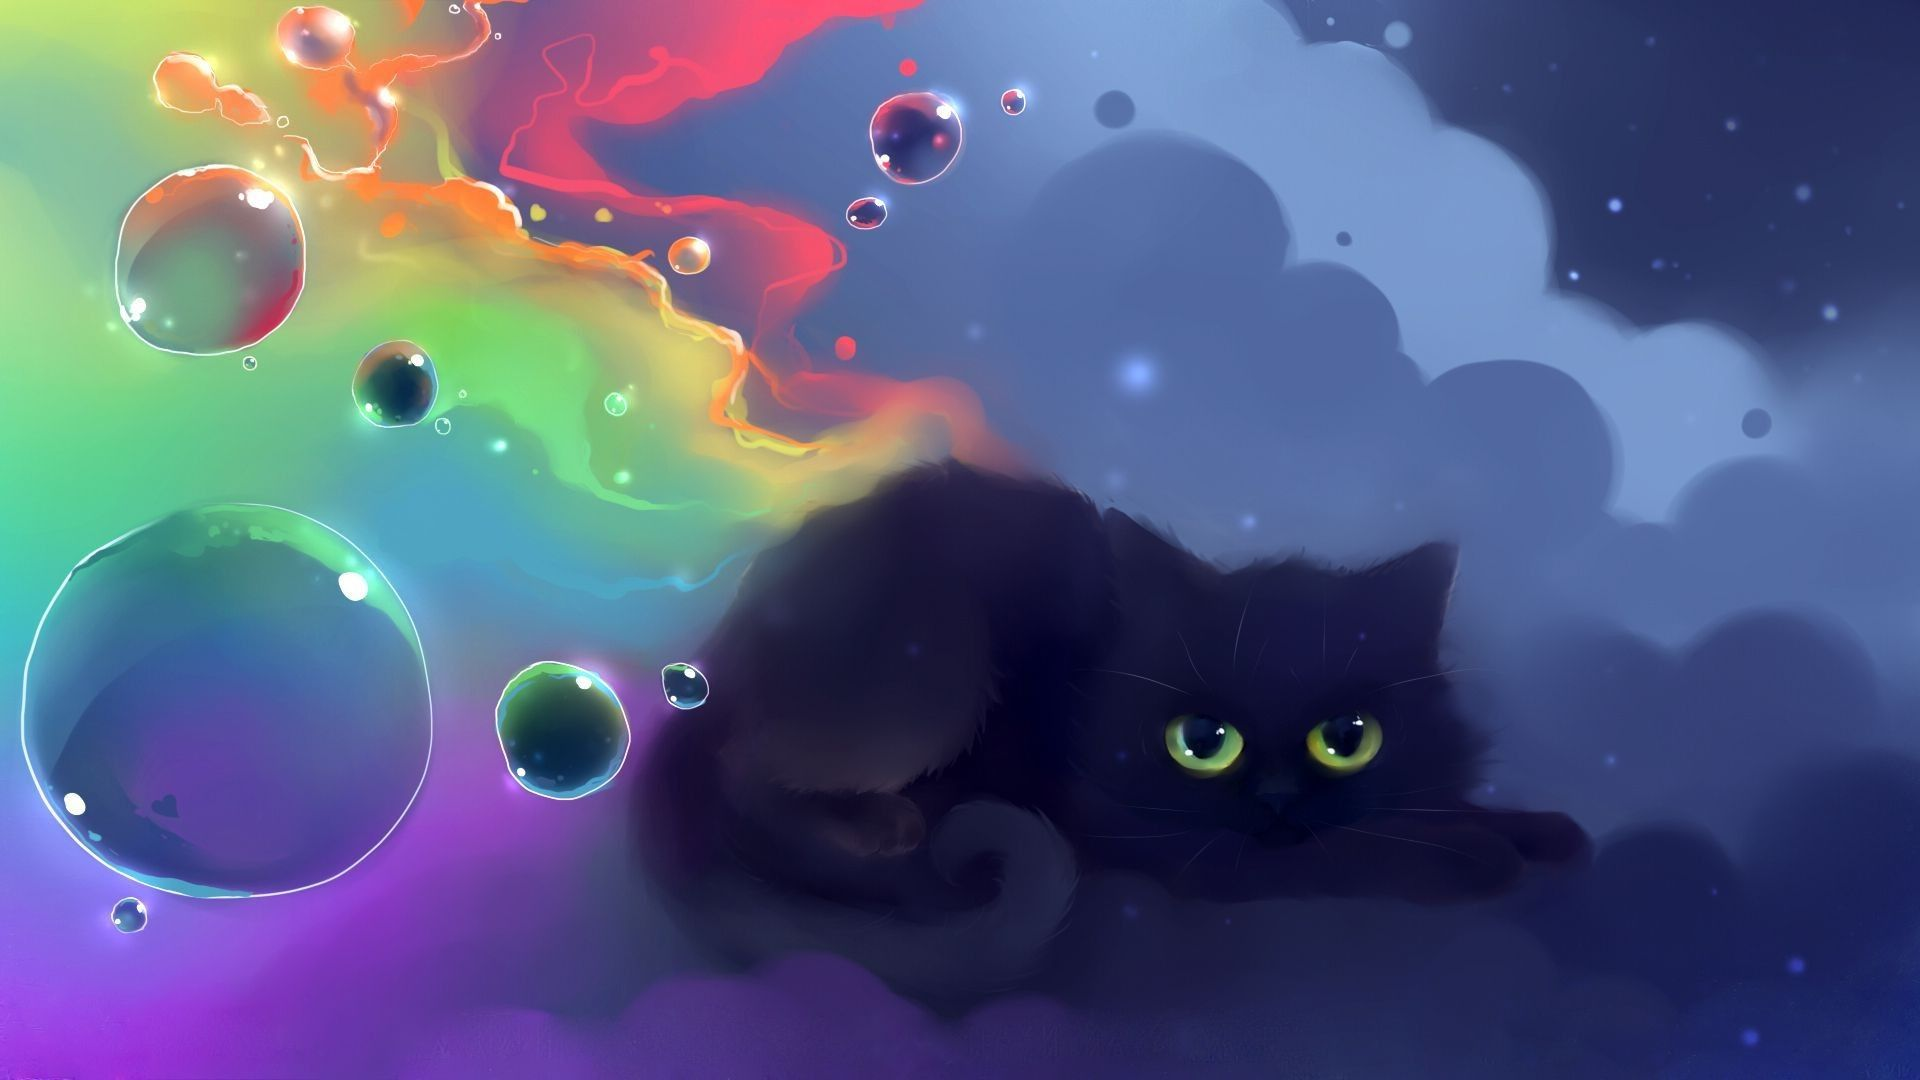 1920x1080 Cute Black Cat Wallpaper   HVGJ Wallpapers in 2019 1920x1080